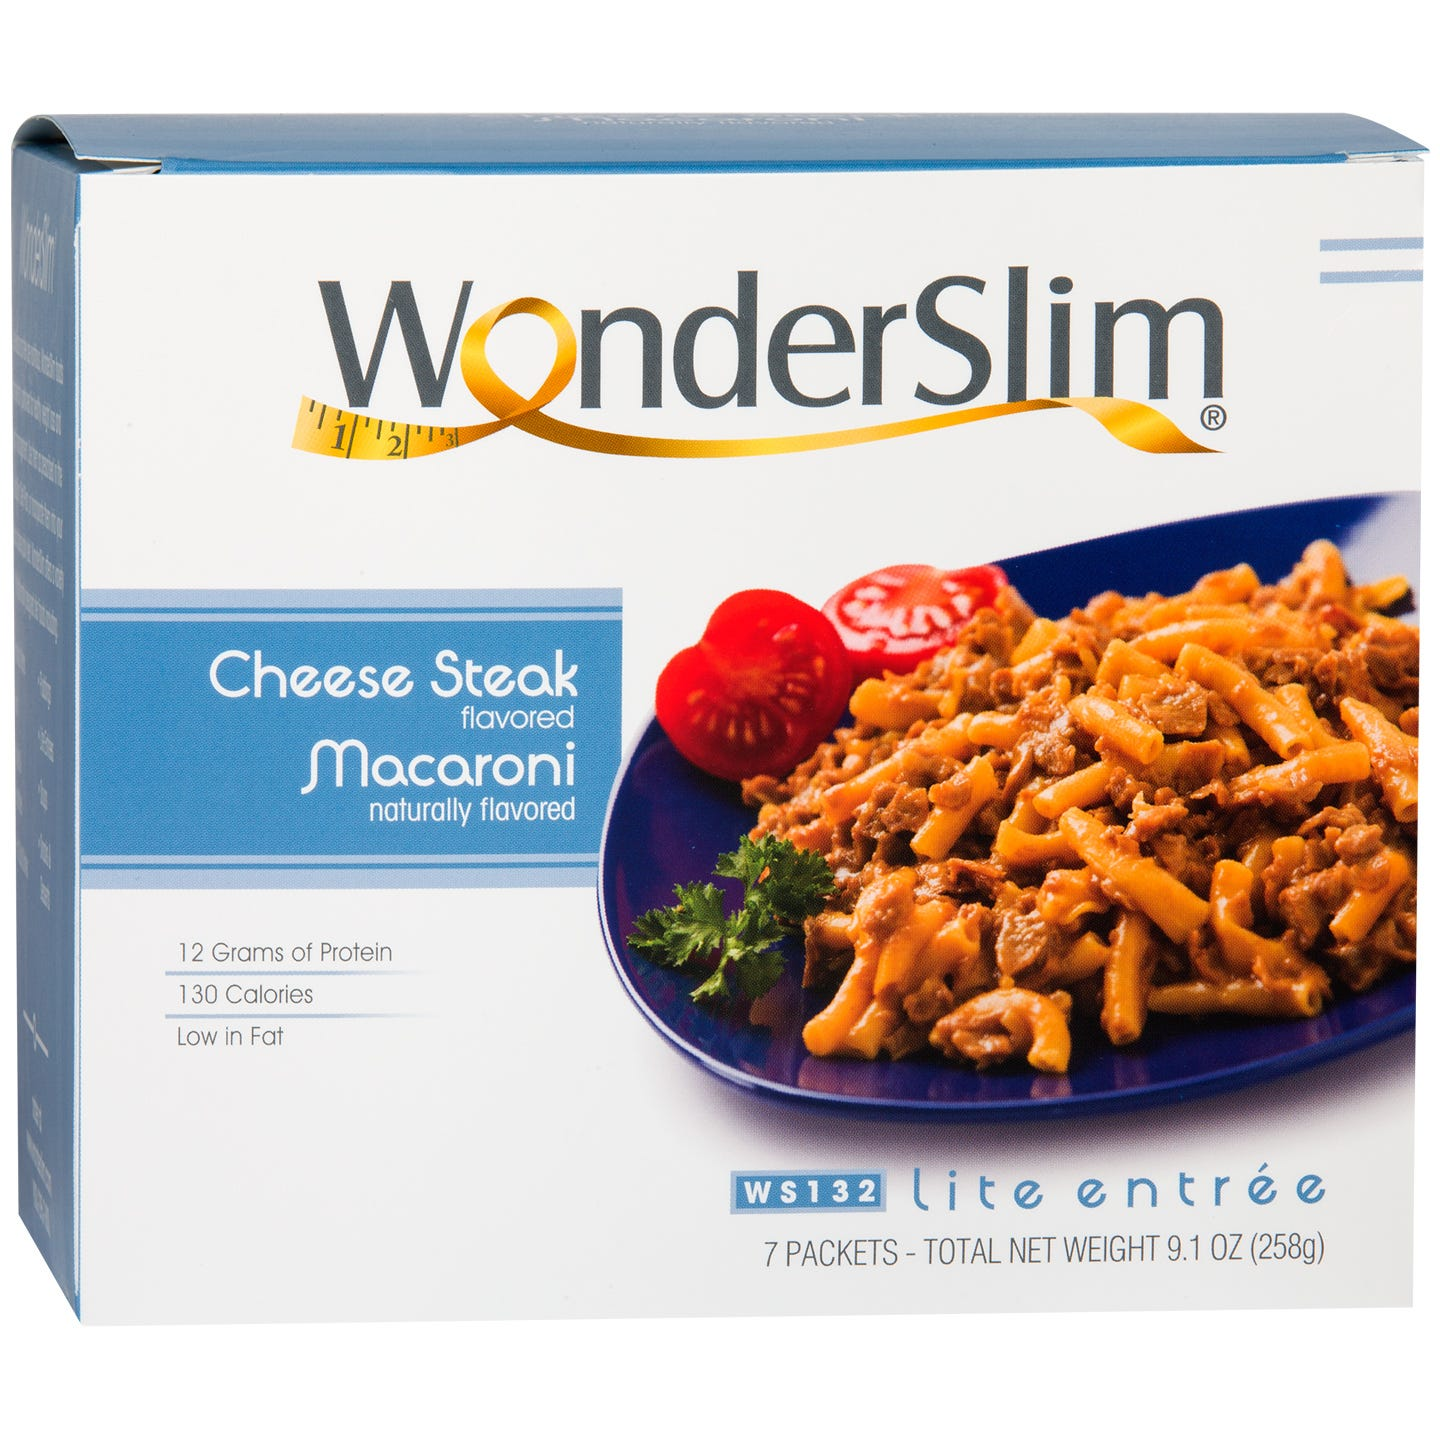 WonderSlim Cheese Steak Macaroni Lite Entree (7 ct) - Rapid Diet Weight Loss Products Shop